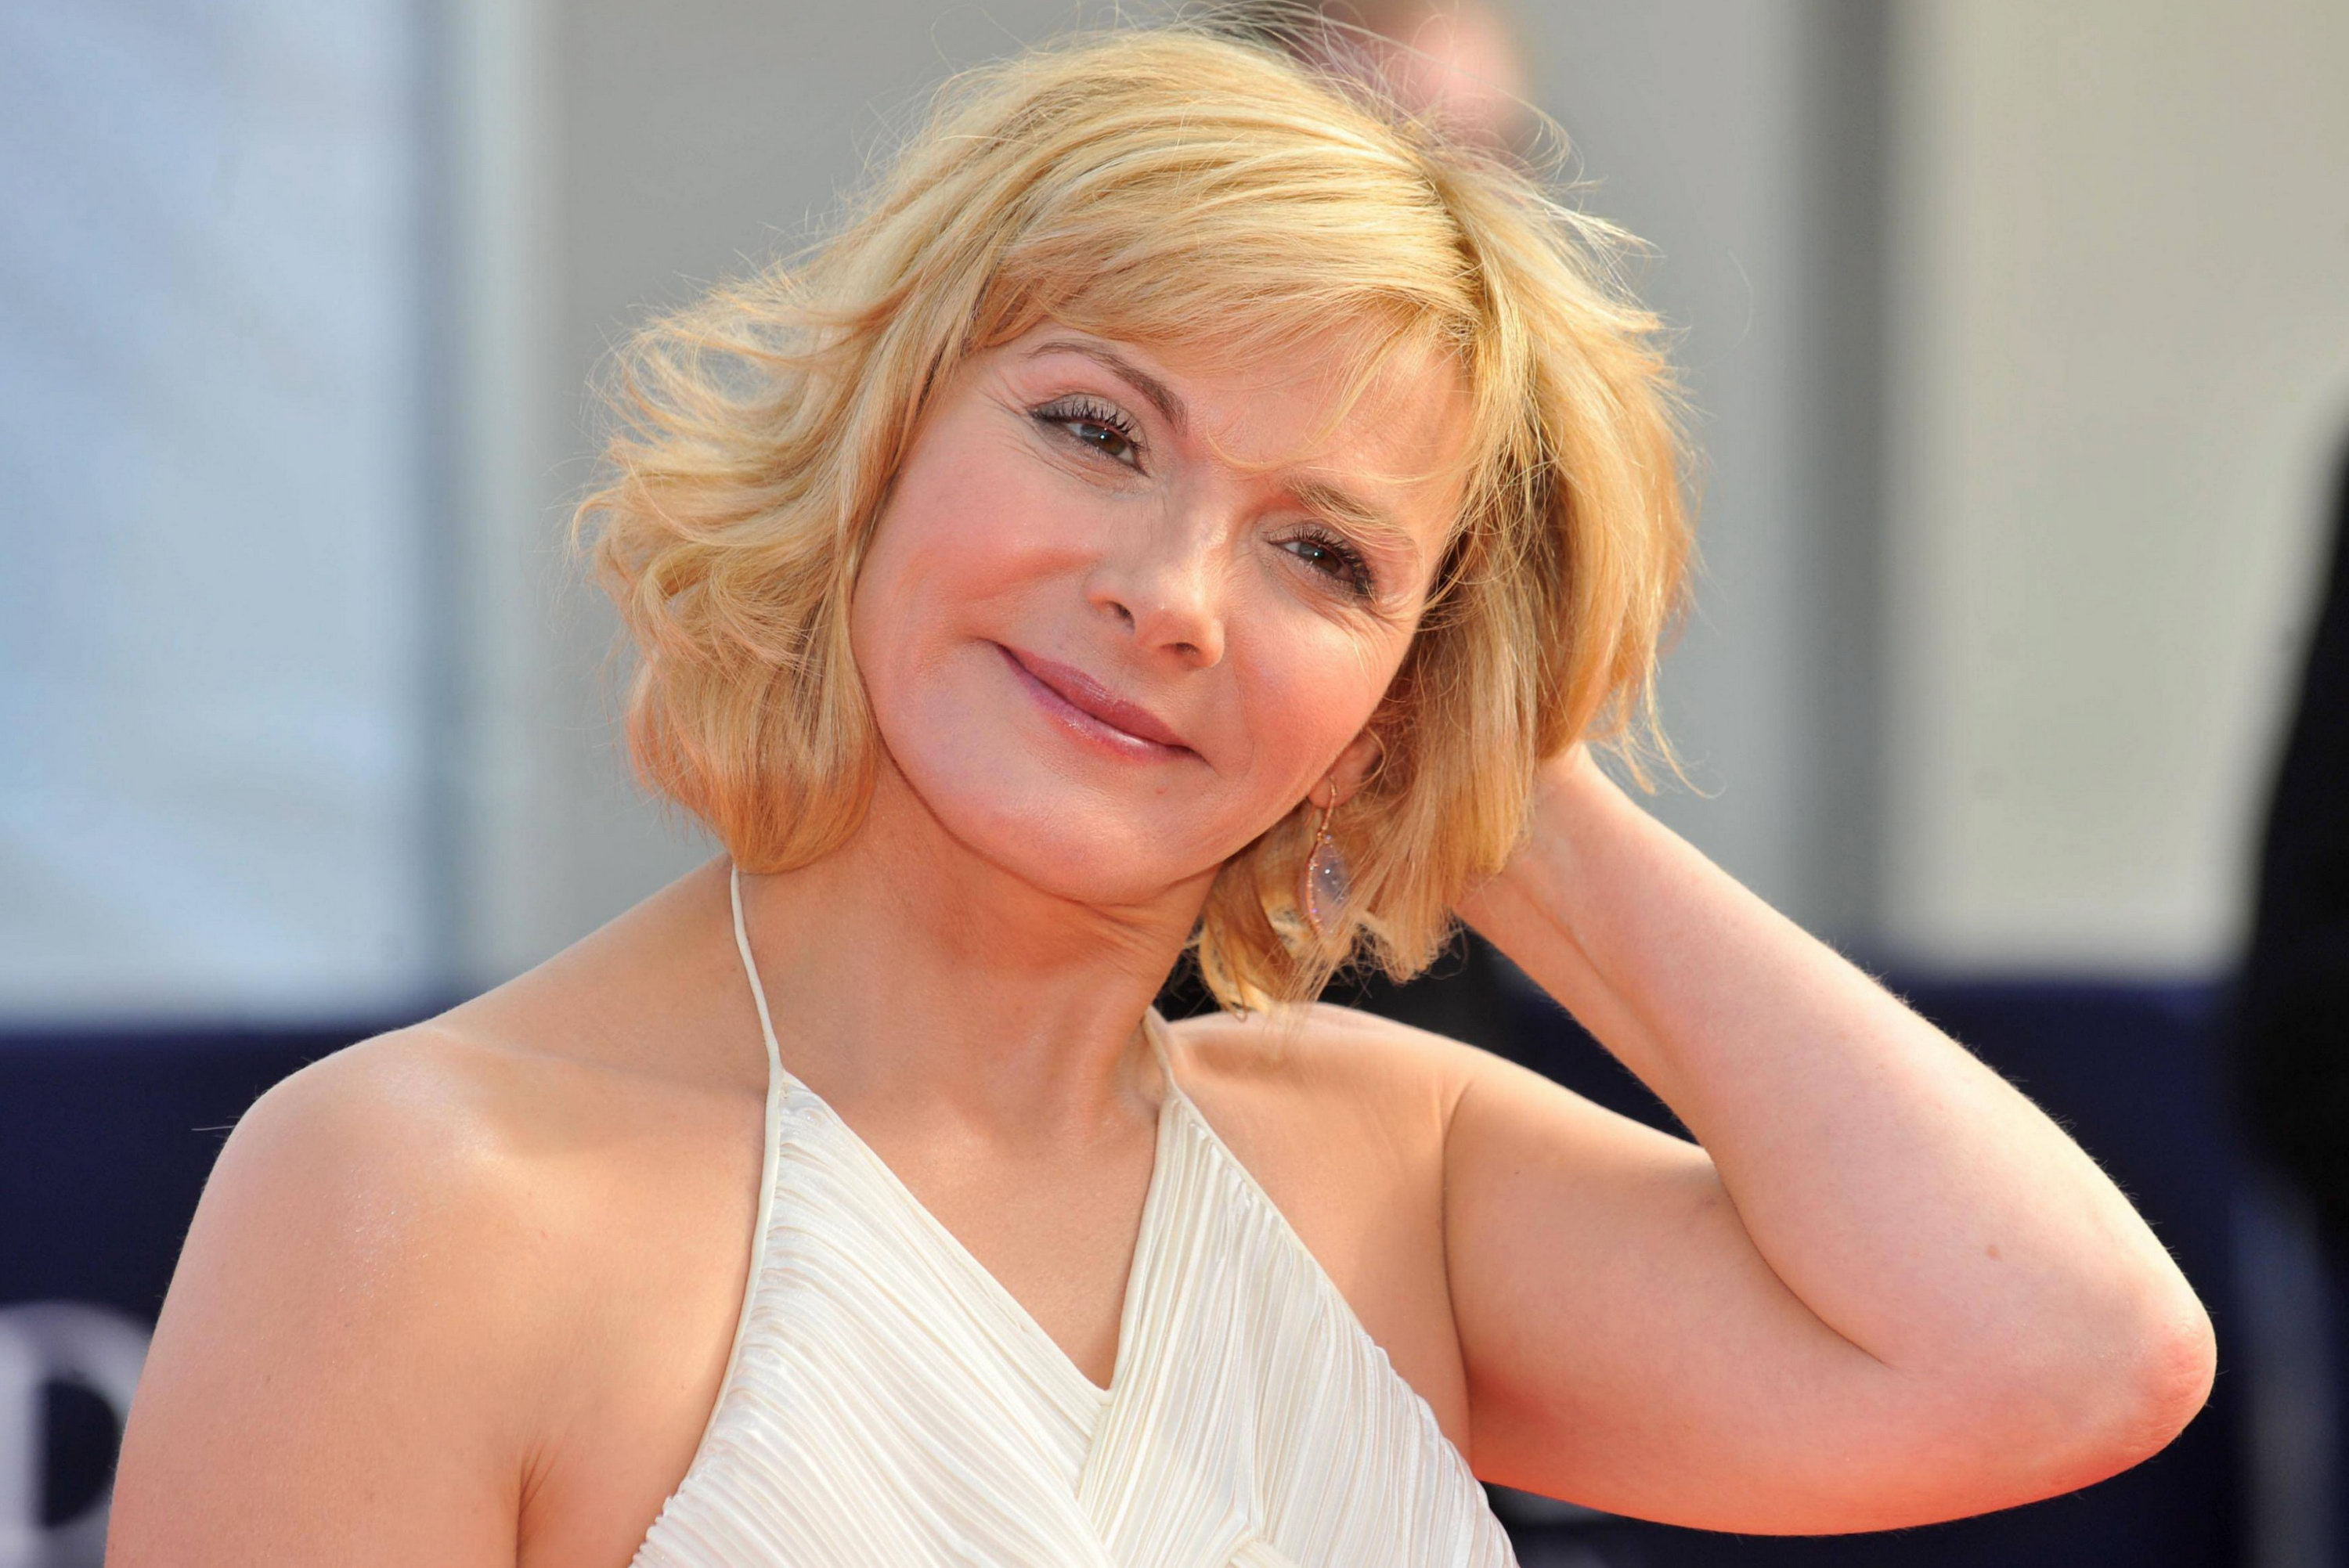 Kim Cattrall - photos,... Kim Cattrall Today